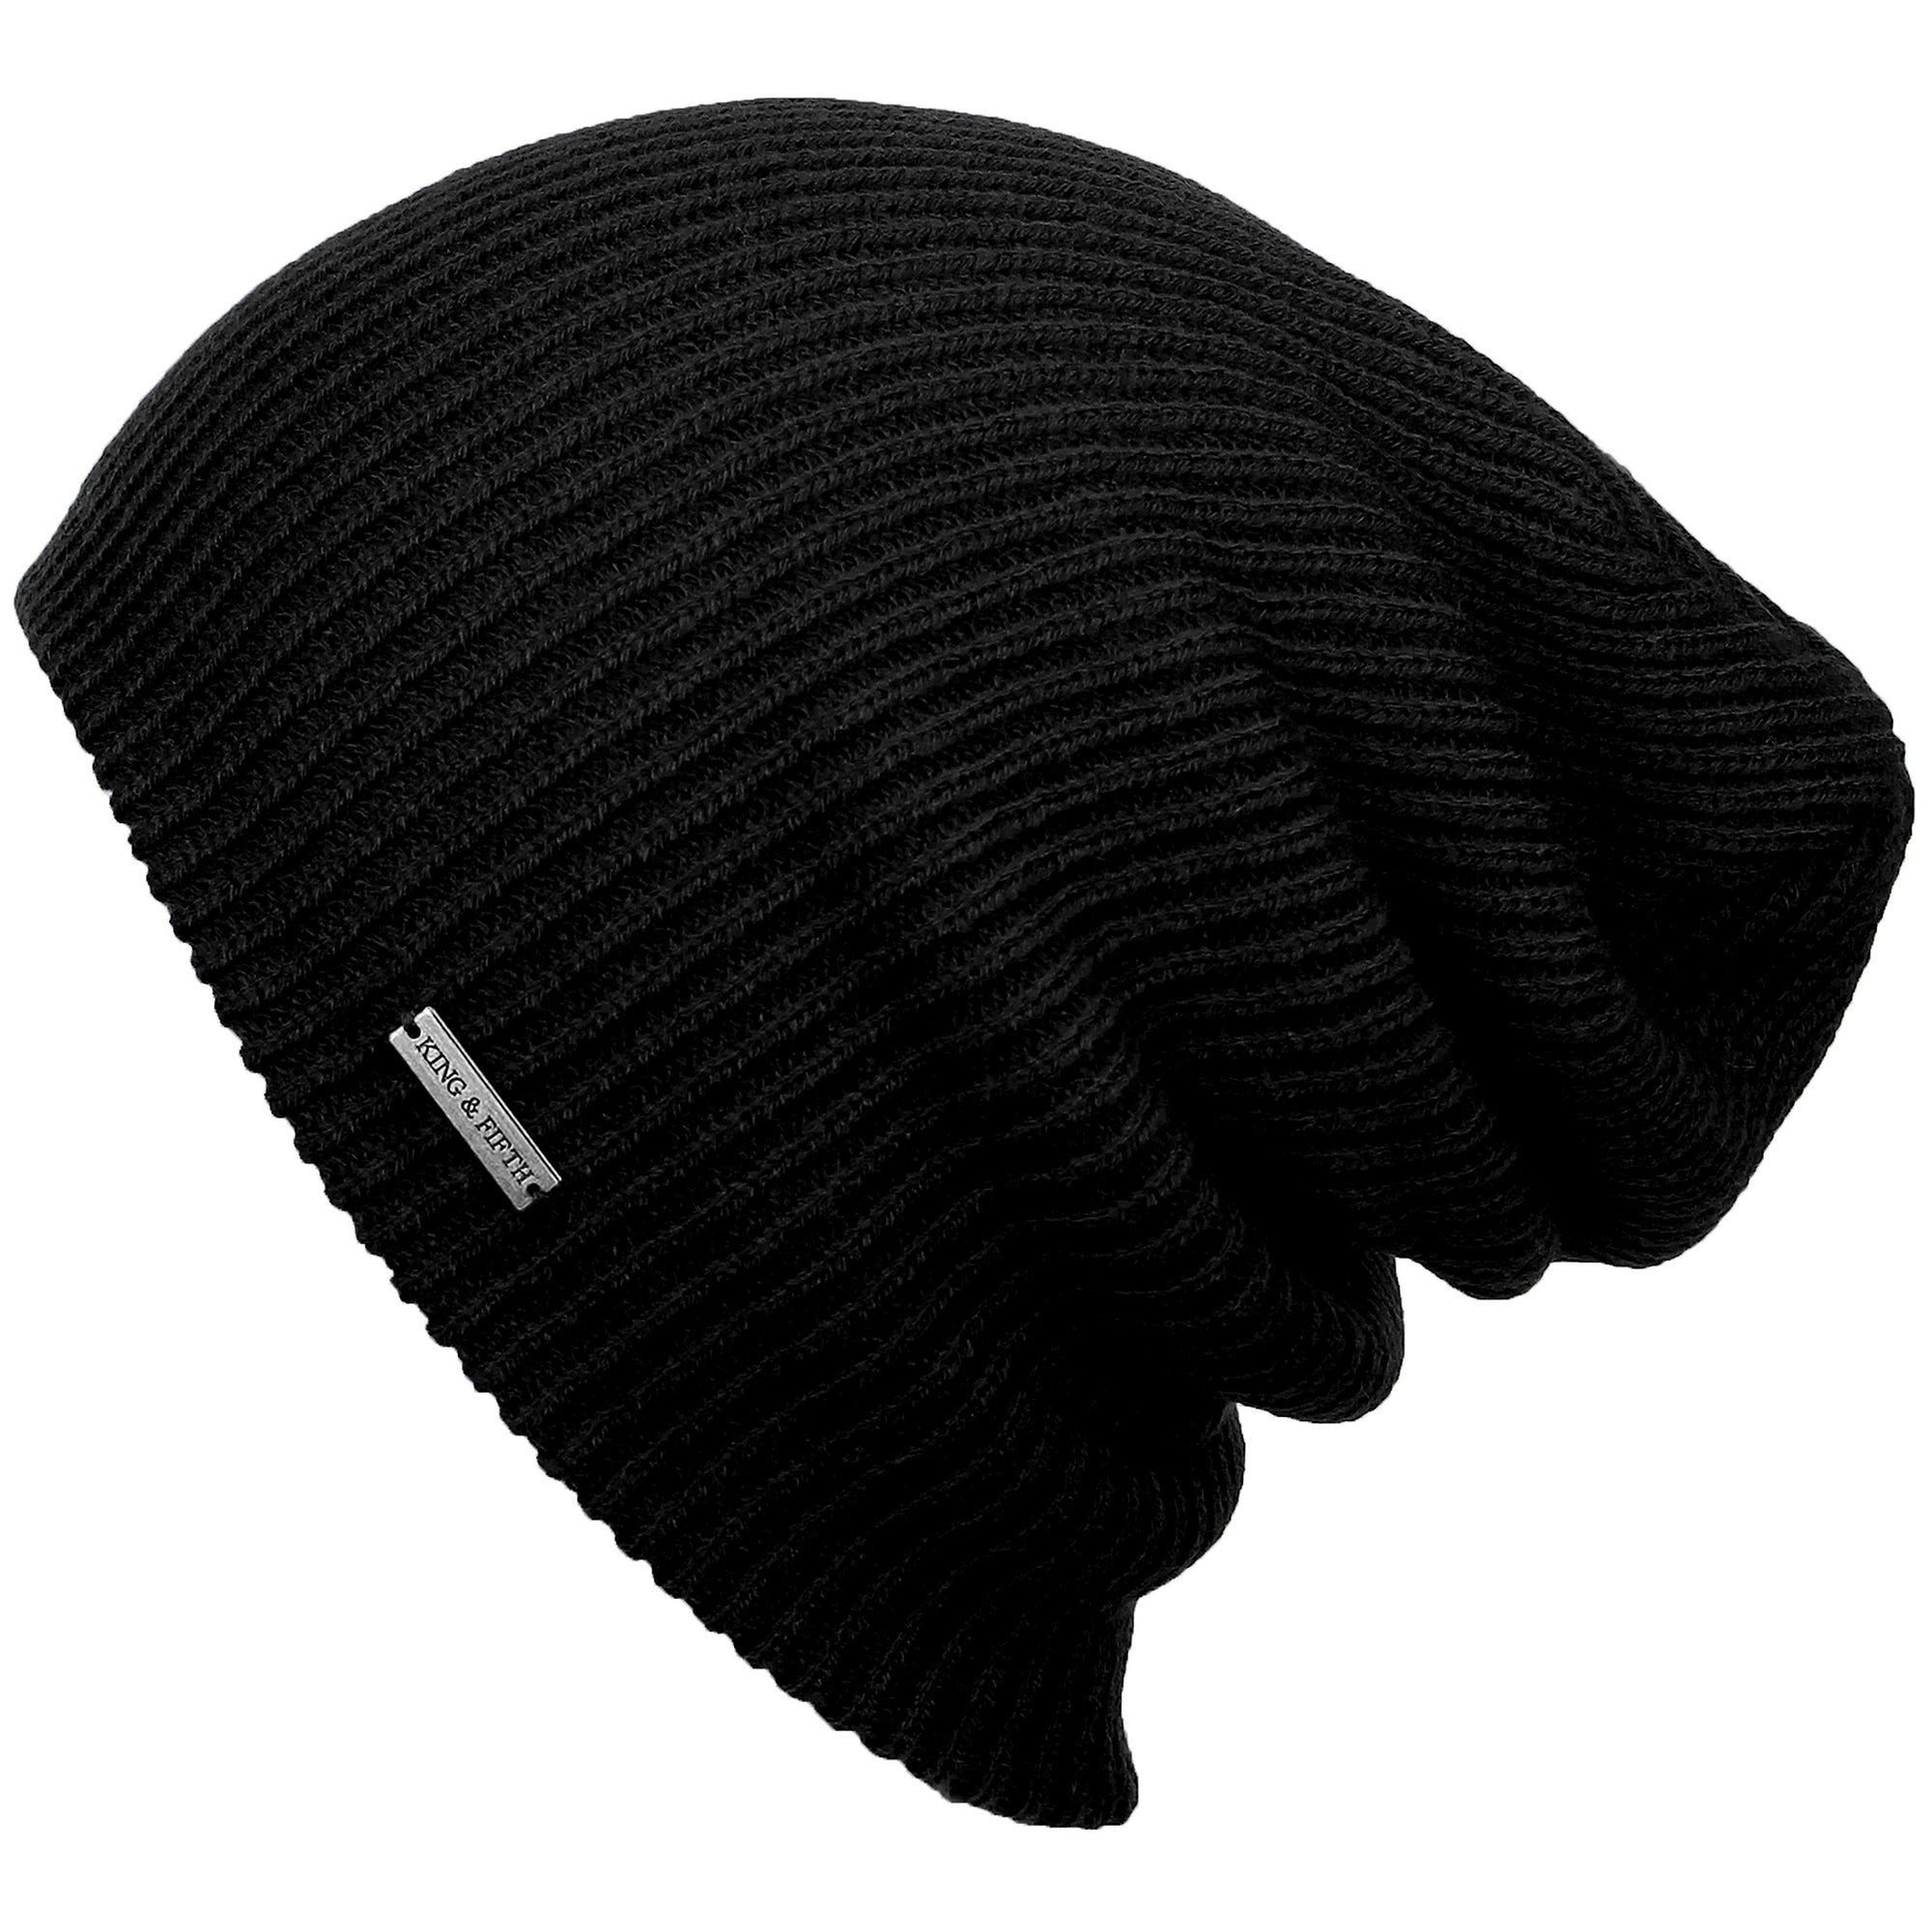 "forms shot of a black knitted slouchy beanie with a metal label that says ""king & fifth"""